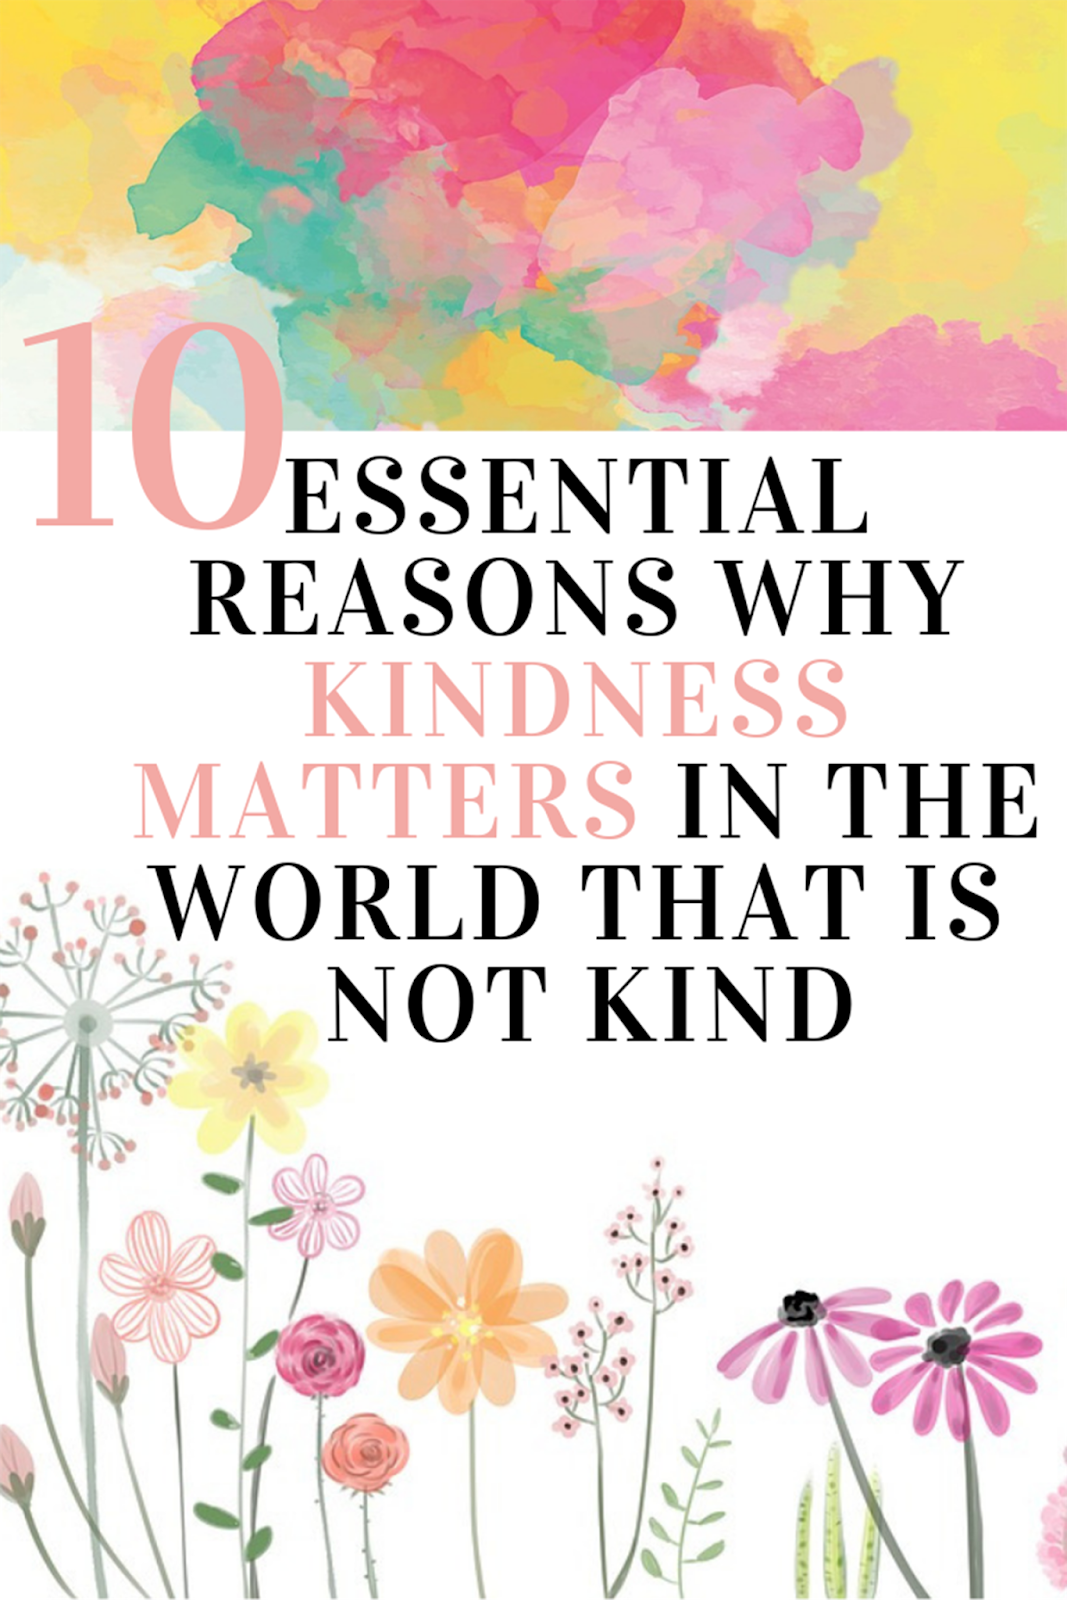 Kindness matters 2019, random act of kindness, kindness day, kindness week, treat people with kindness, great kindness challenge, kindness definition, advent of kindness